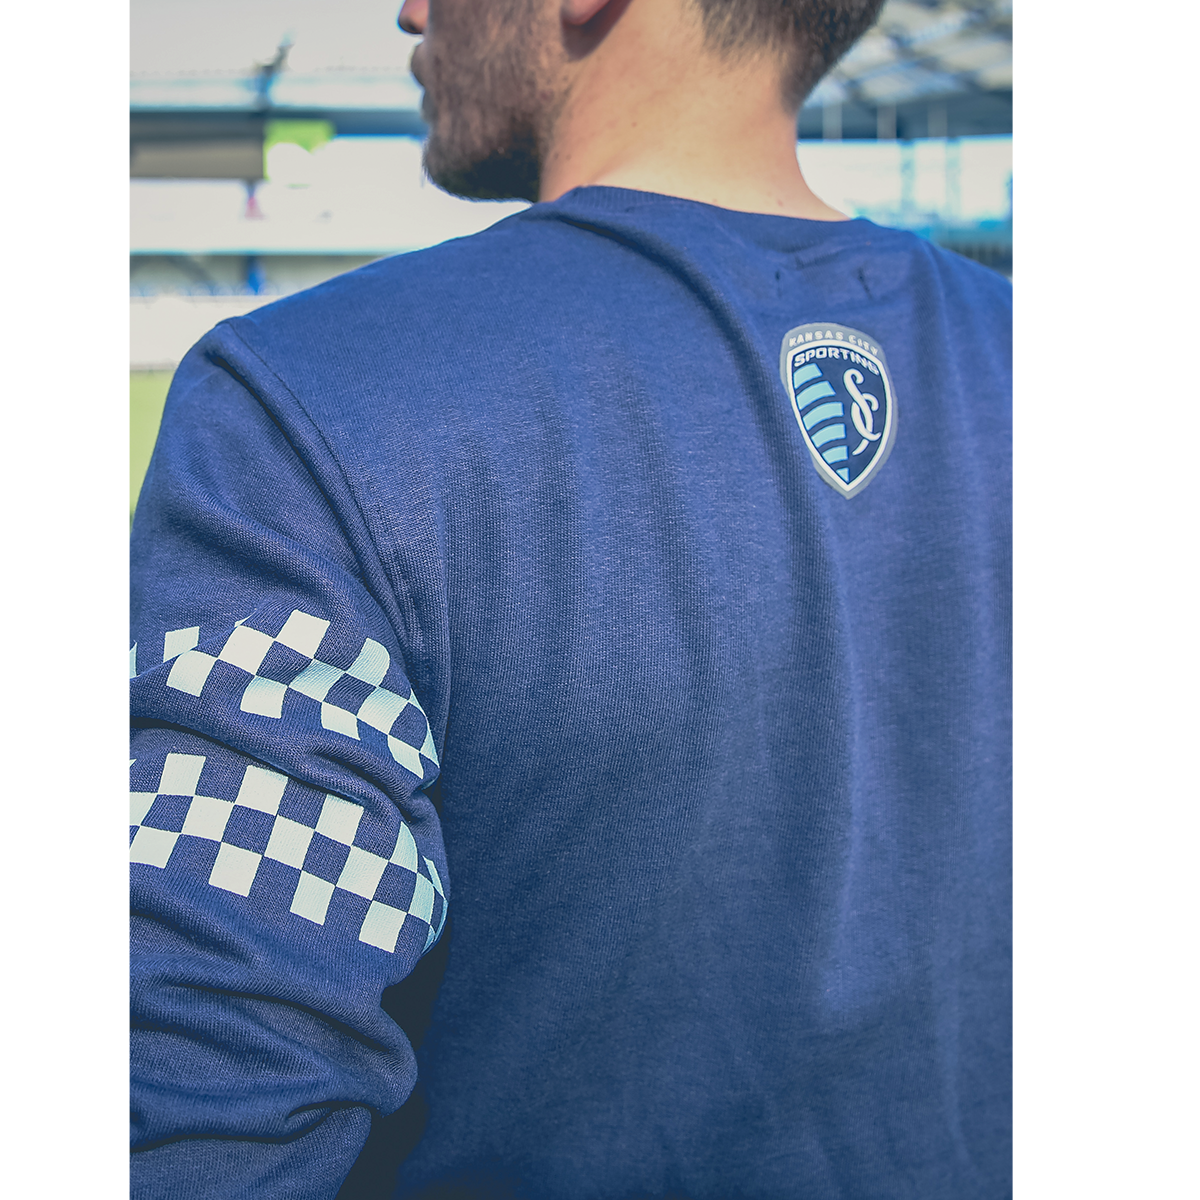 Racing stripes for the navy sweatshirt for SKCxLBF